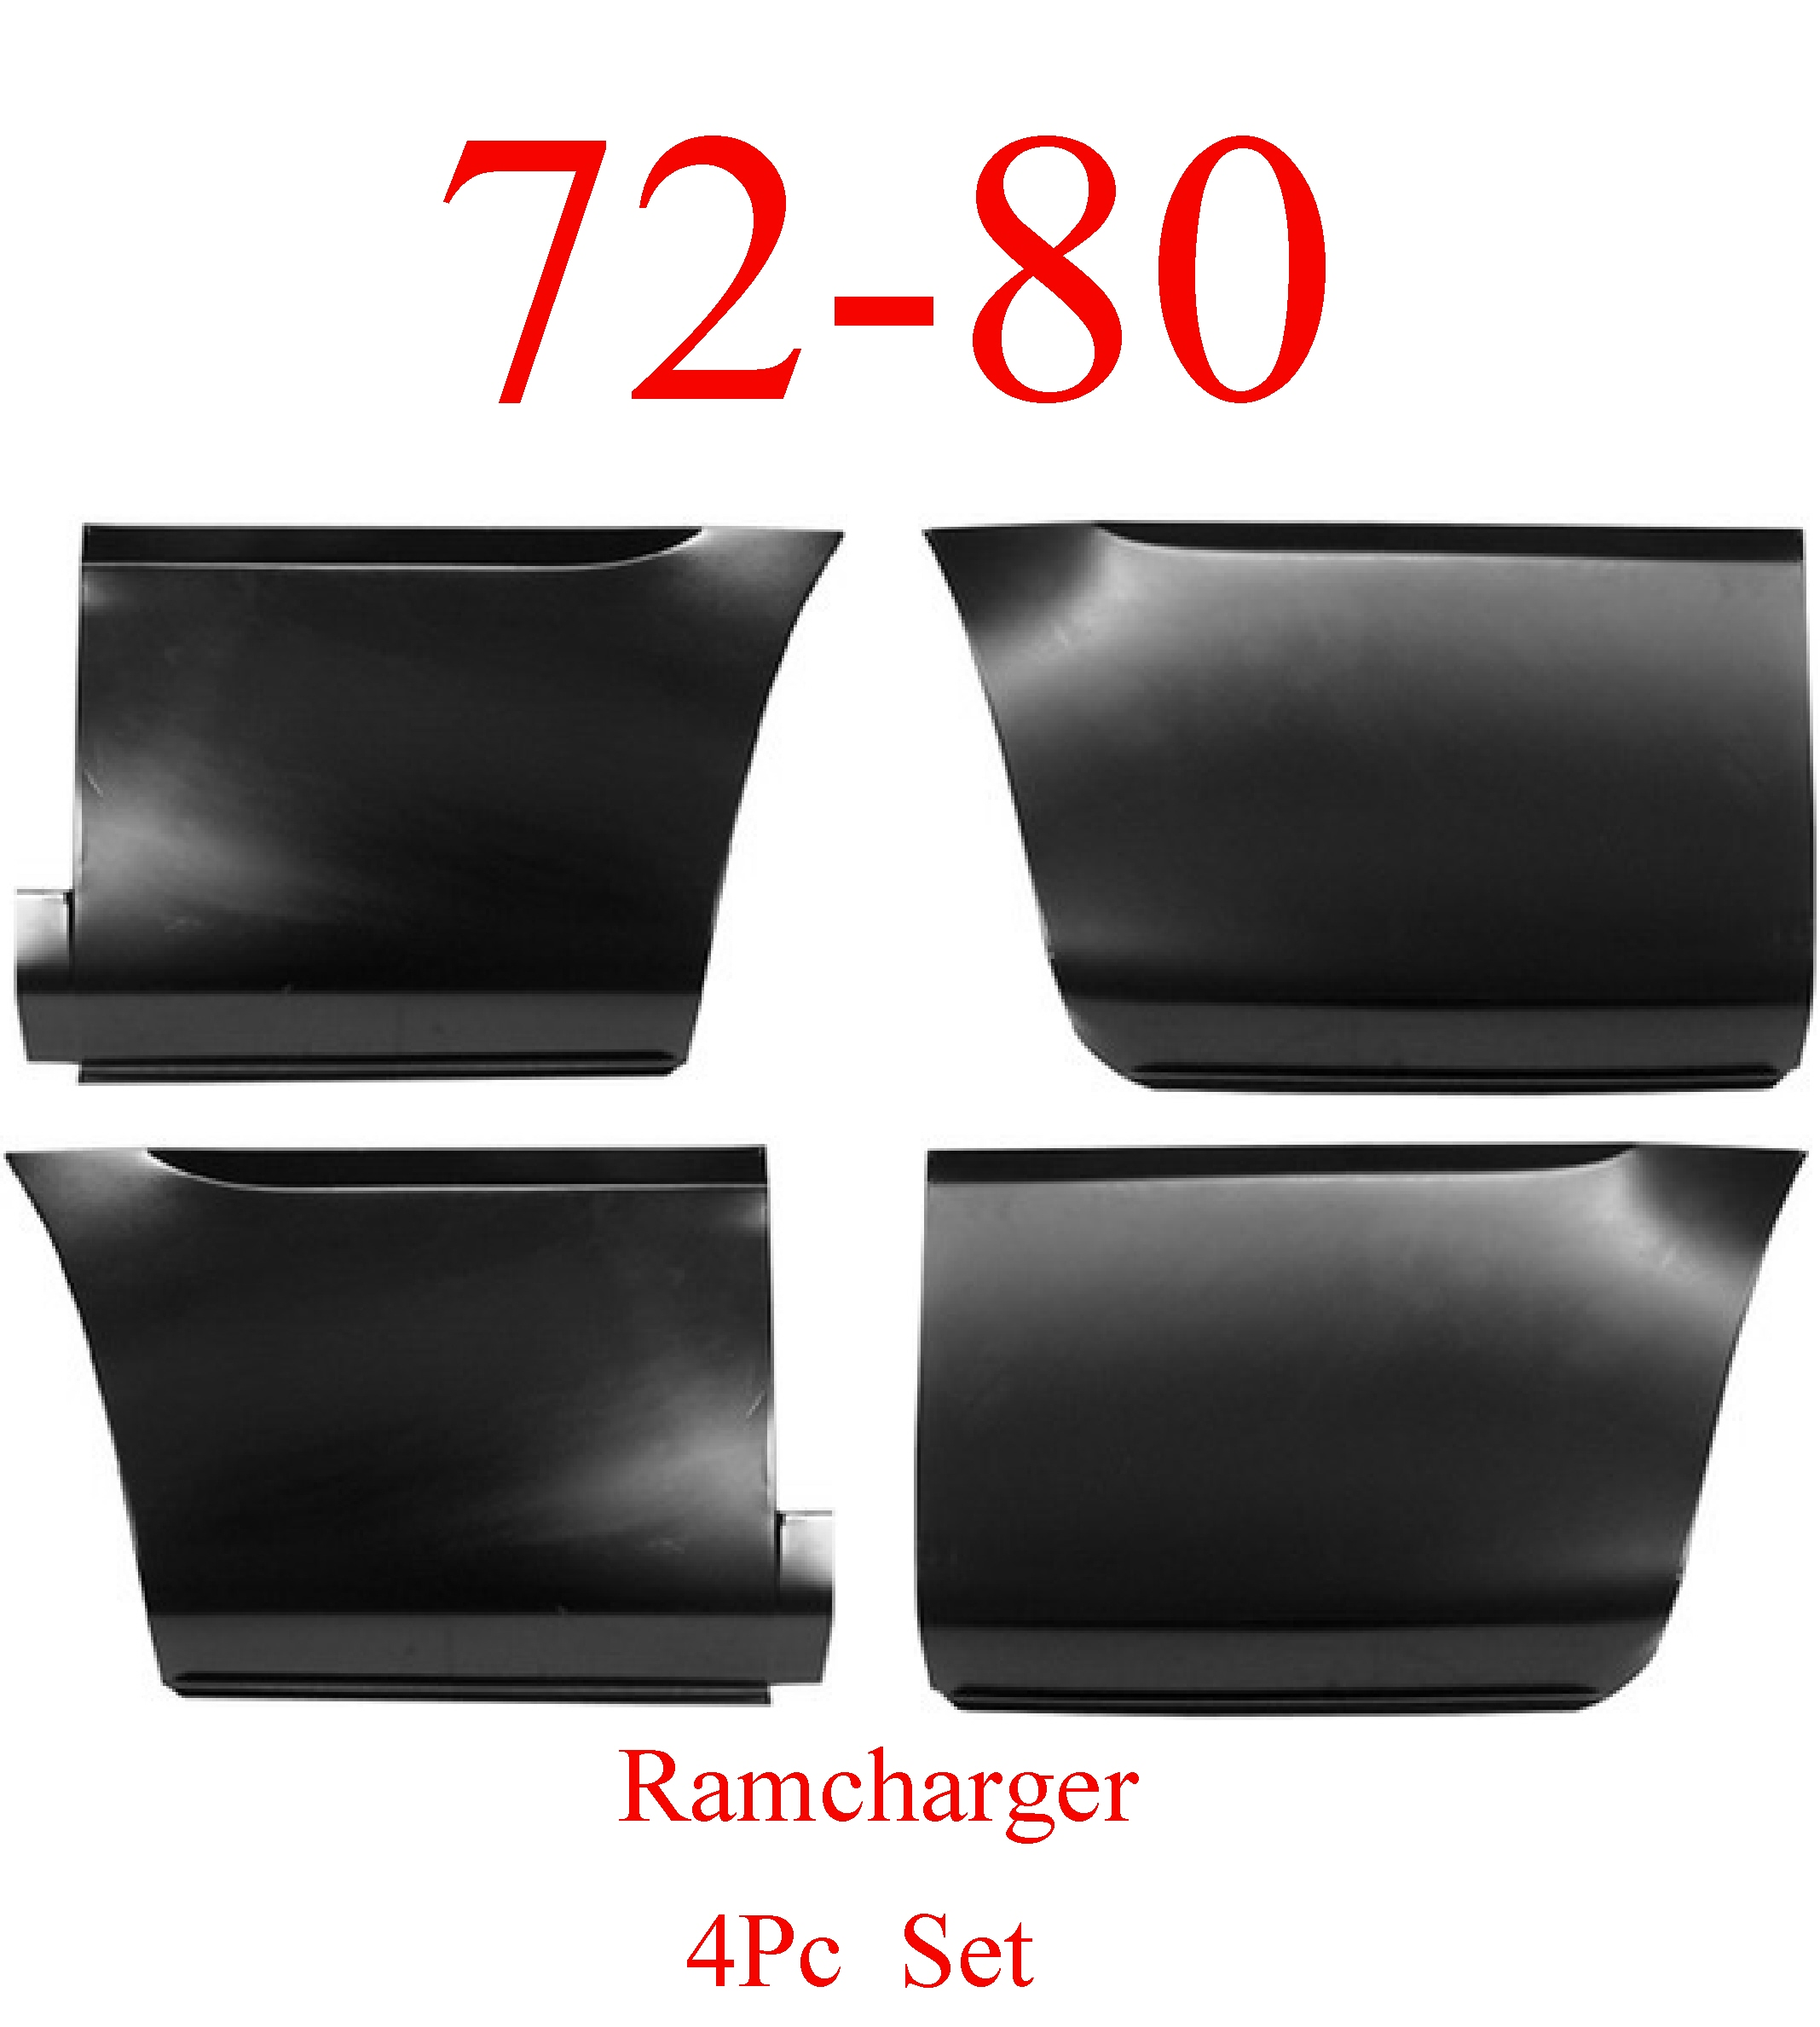 72-80 Dodge 4Pc Ramcharger Front & Rear Lower Bed Panel Set